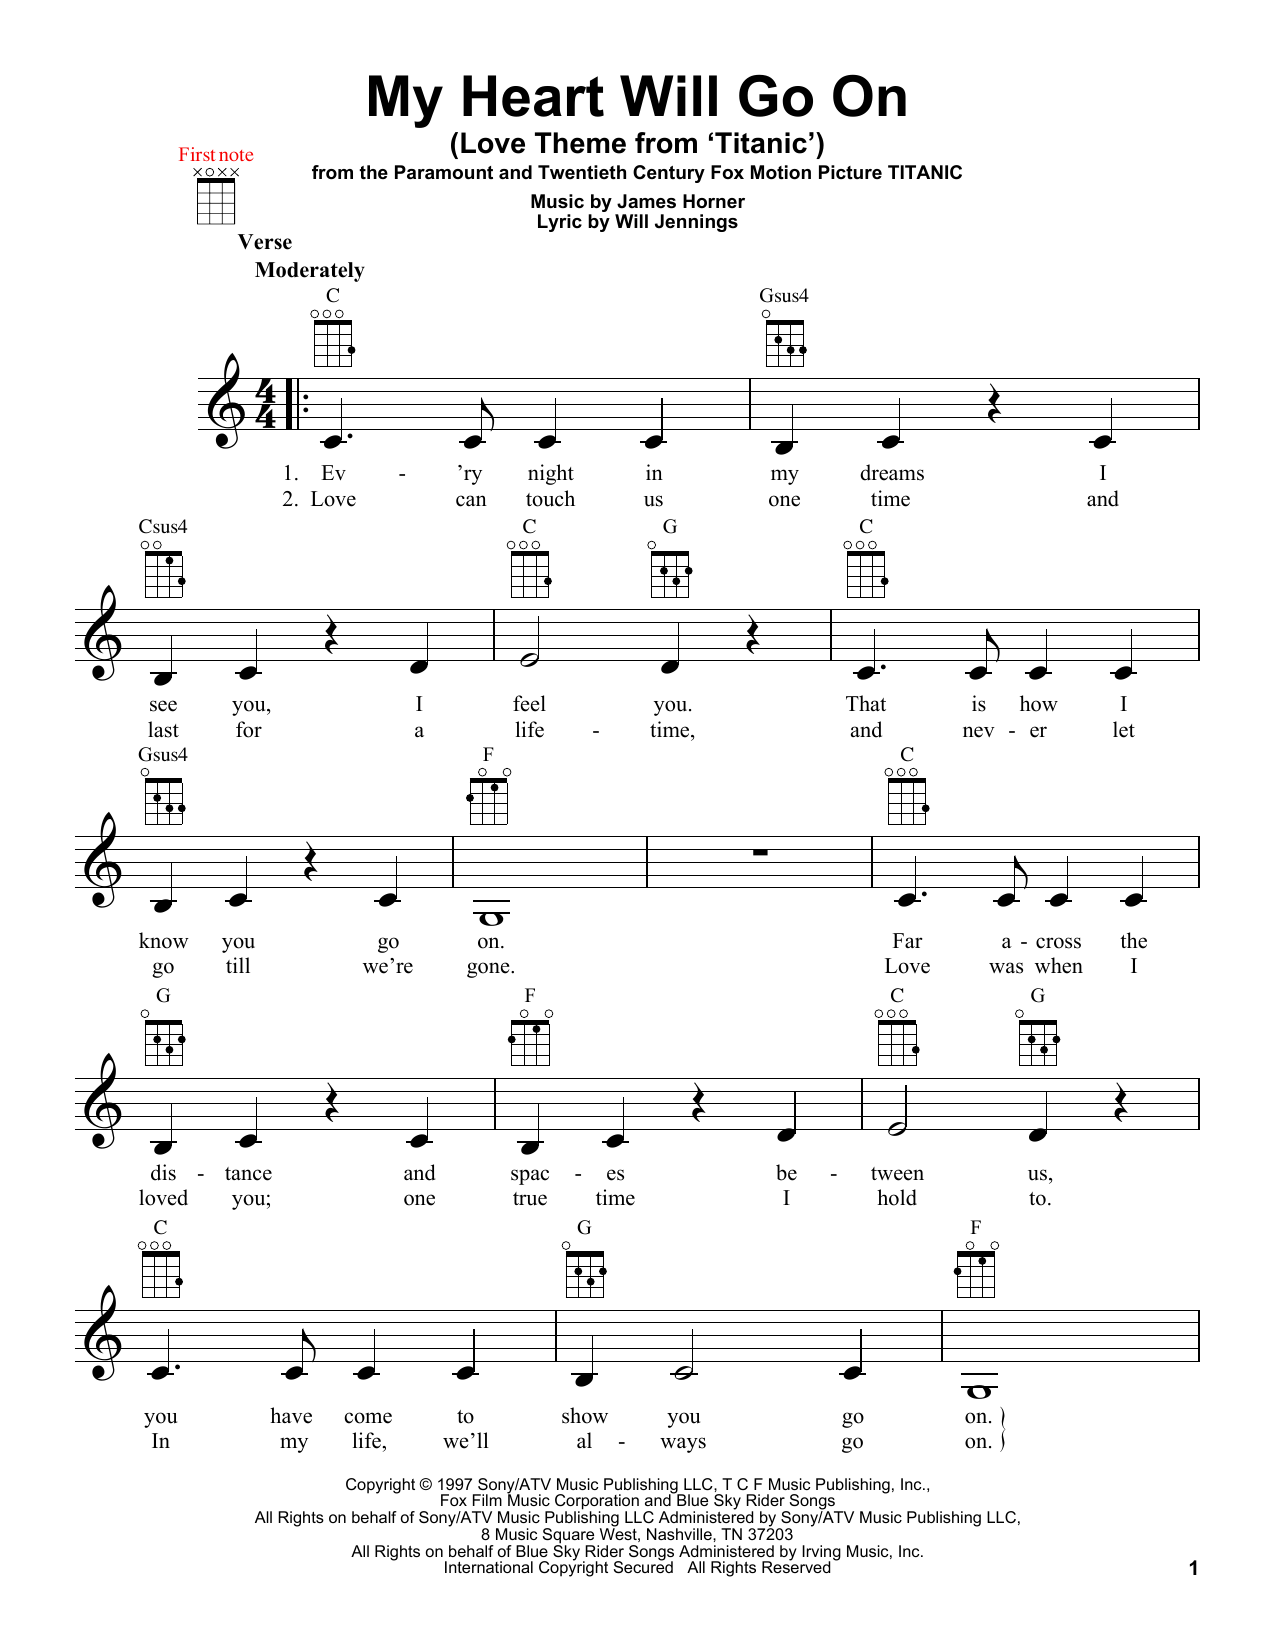 Violin violin chords my heart will go on : My Heart Will Go On (Love Theme From 'Titanic') sheet music by ...